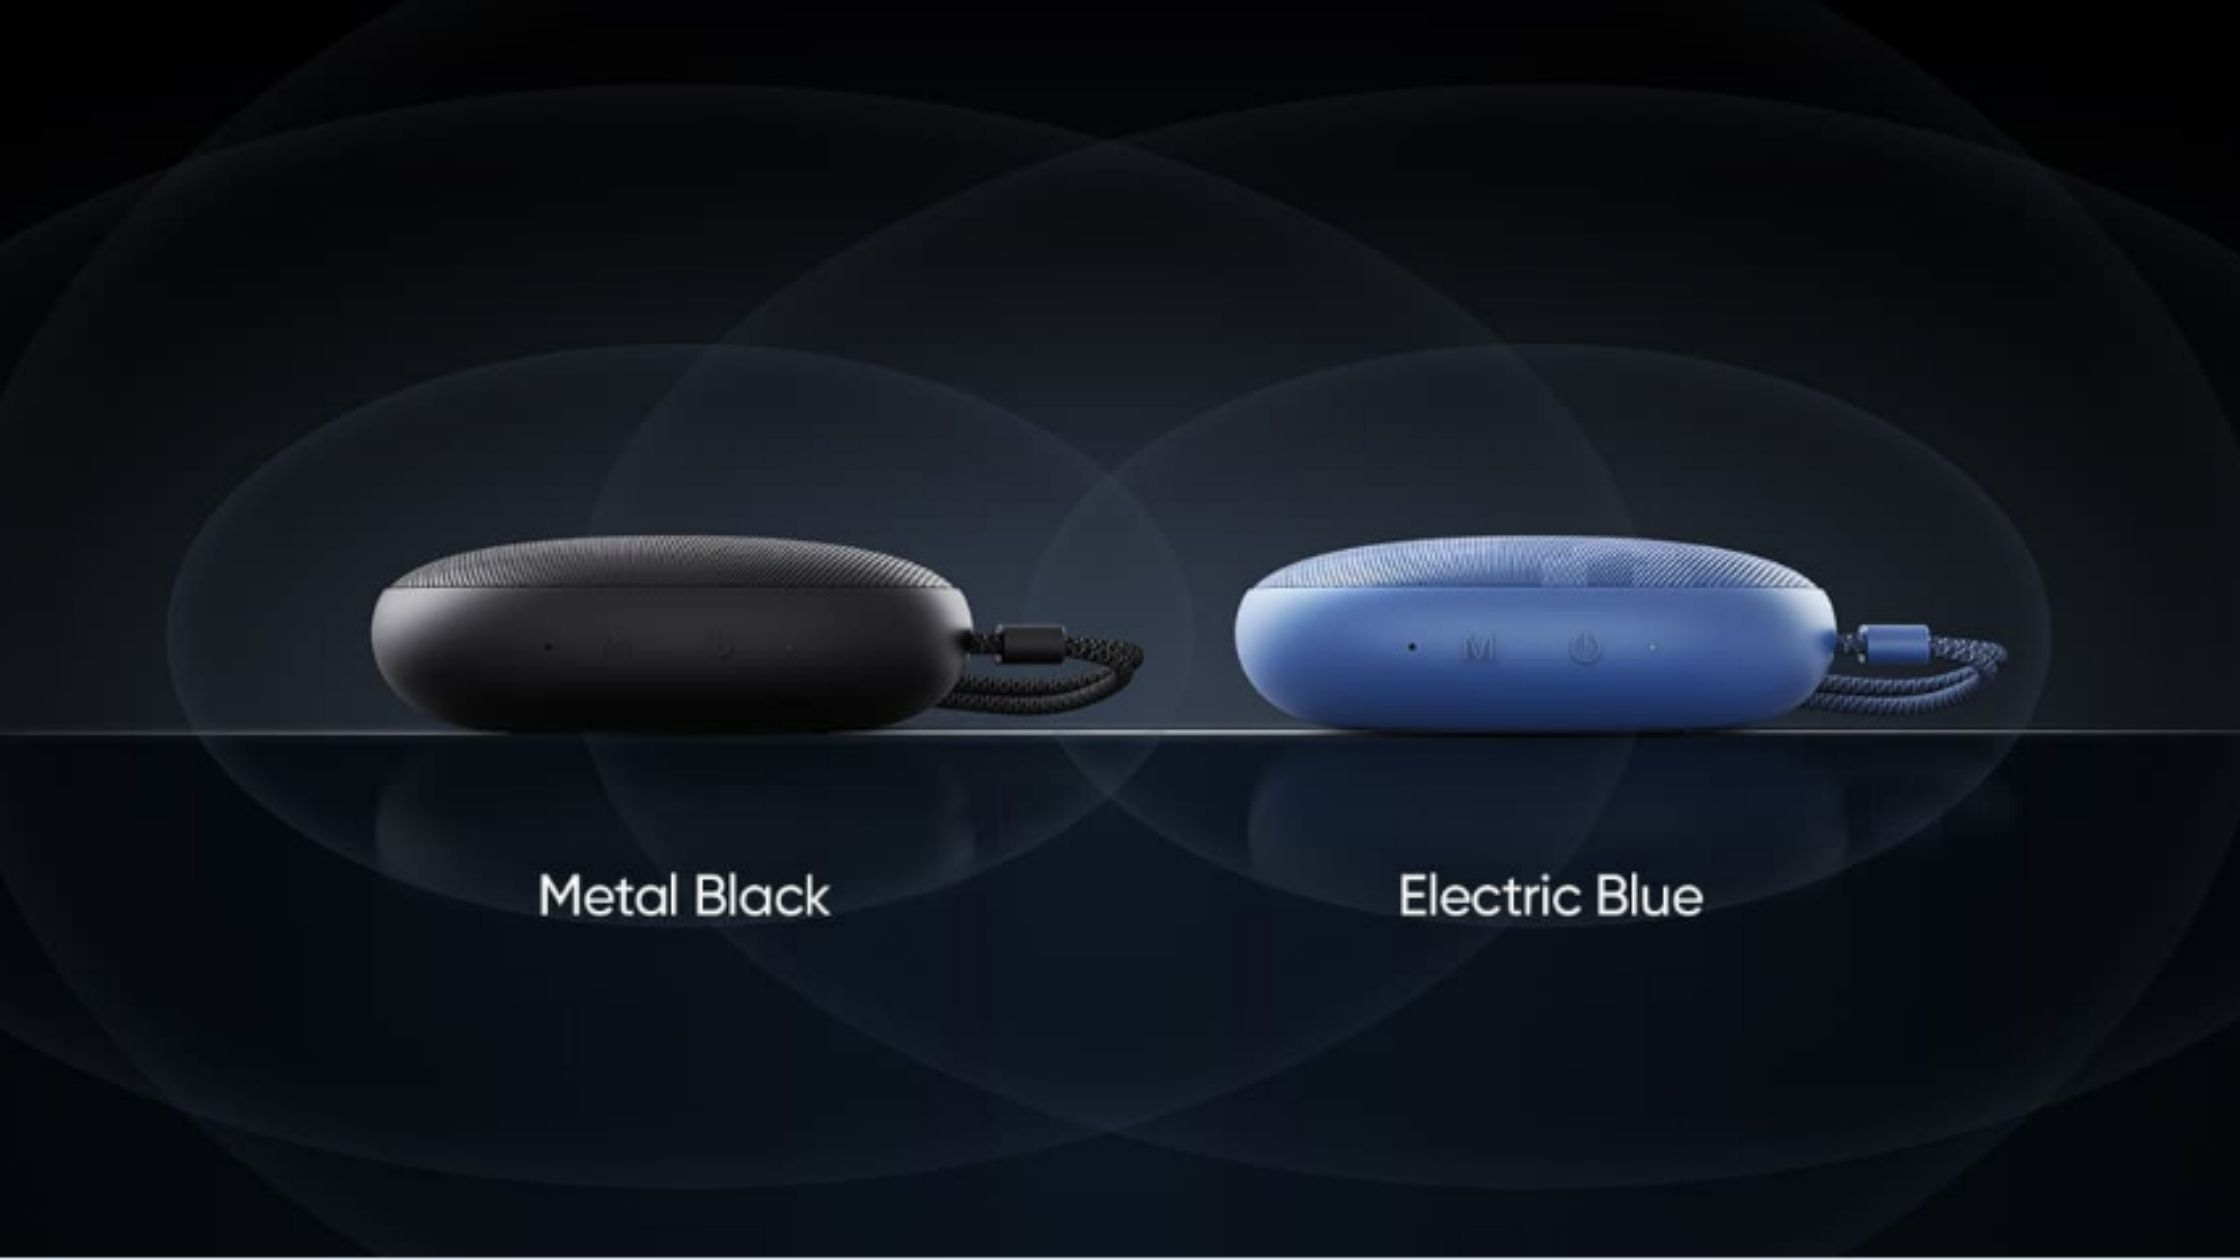 Realme Cobble and Realme Pocket Bluetooth speakers